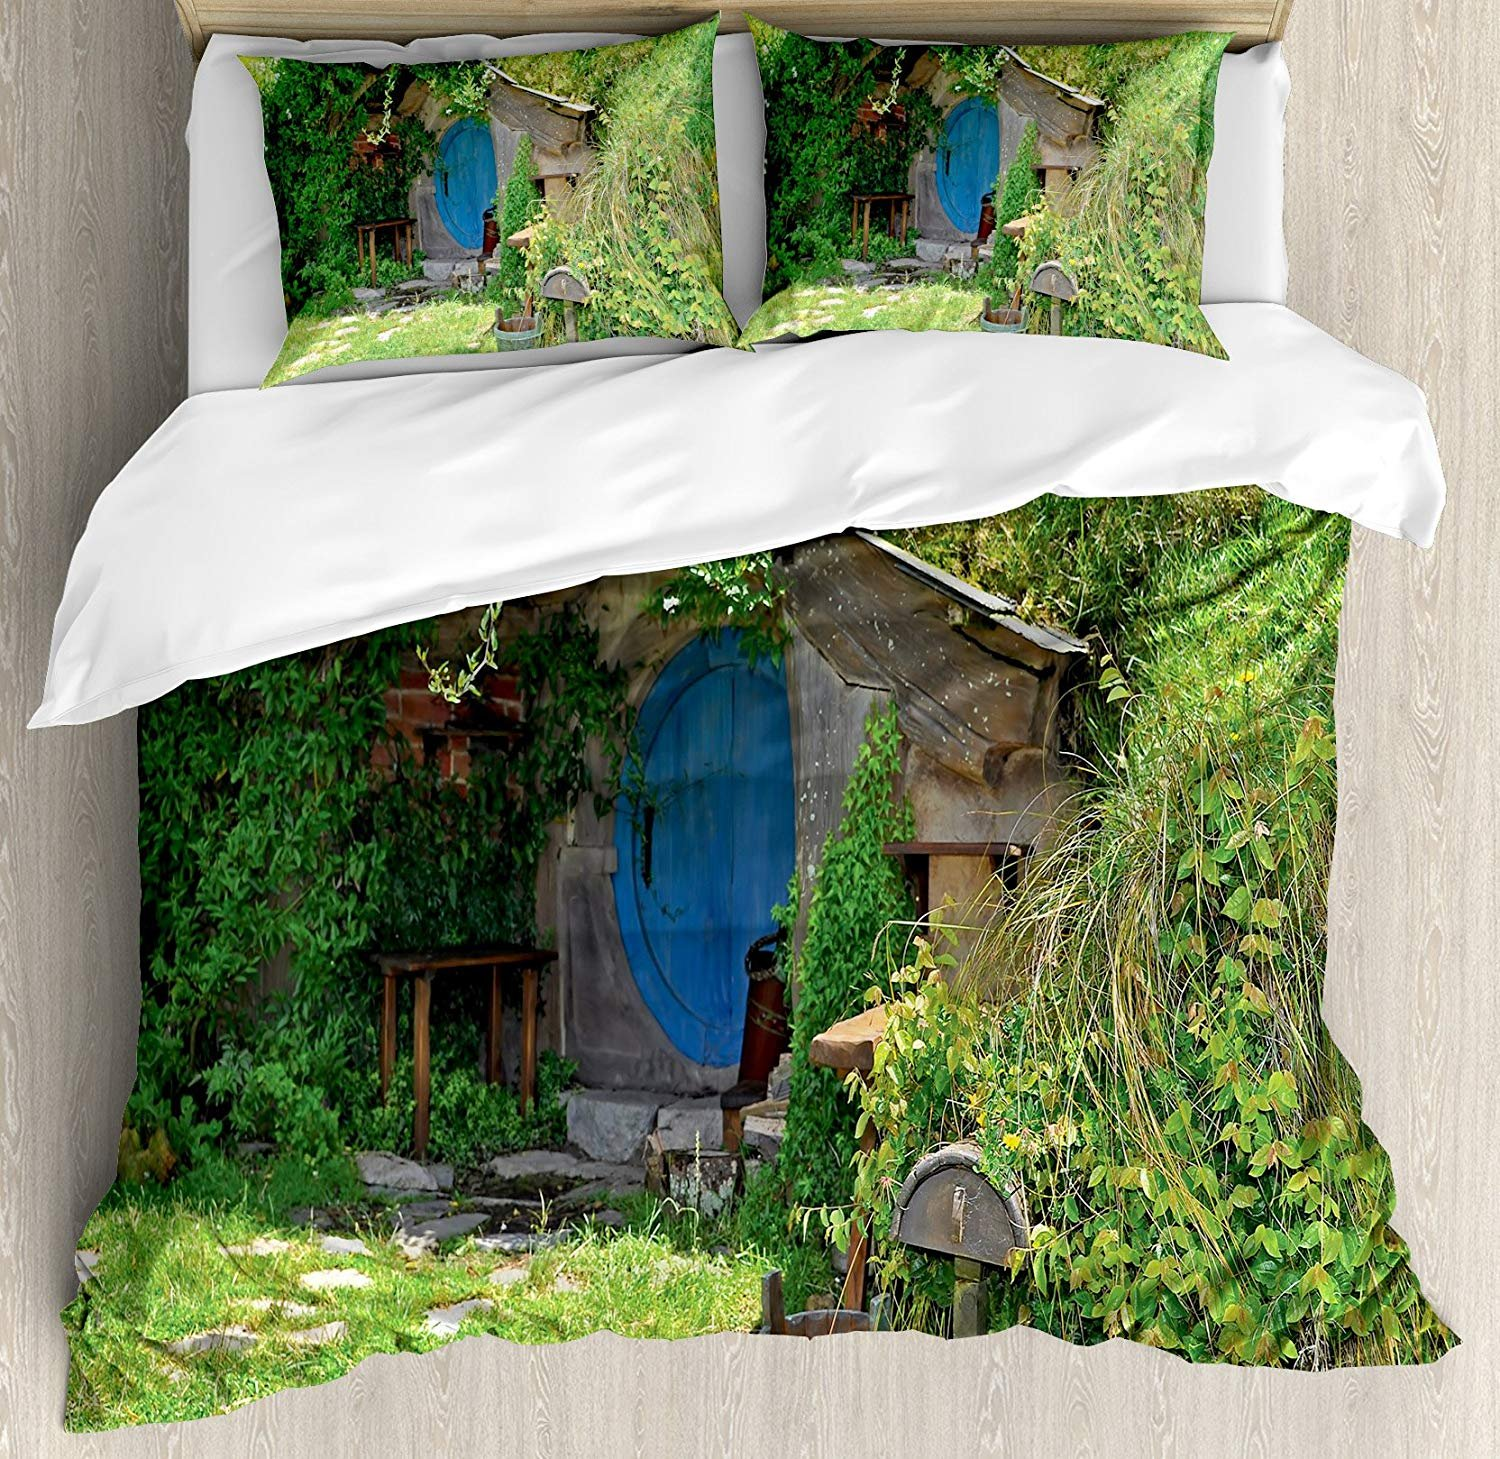 Hobbits Bedding Duvet Cover Sets for Children/Adult/Kids/Teens Twin Size, Fantasy Hobbit Land House in Magical Overhill Woods Movie Scene New Zealand, Hotel Luxury Decorative 4pcs, Green Brown Blue